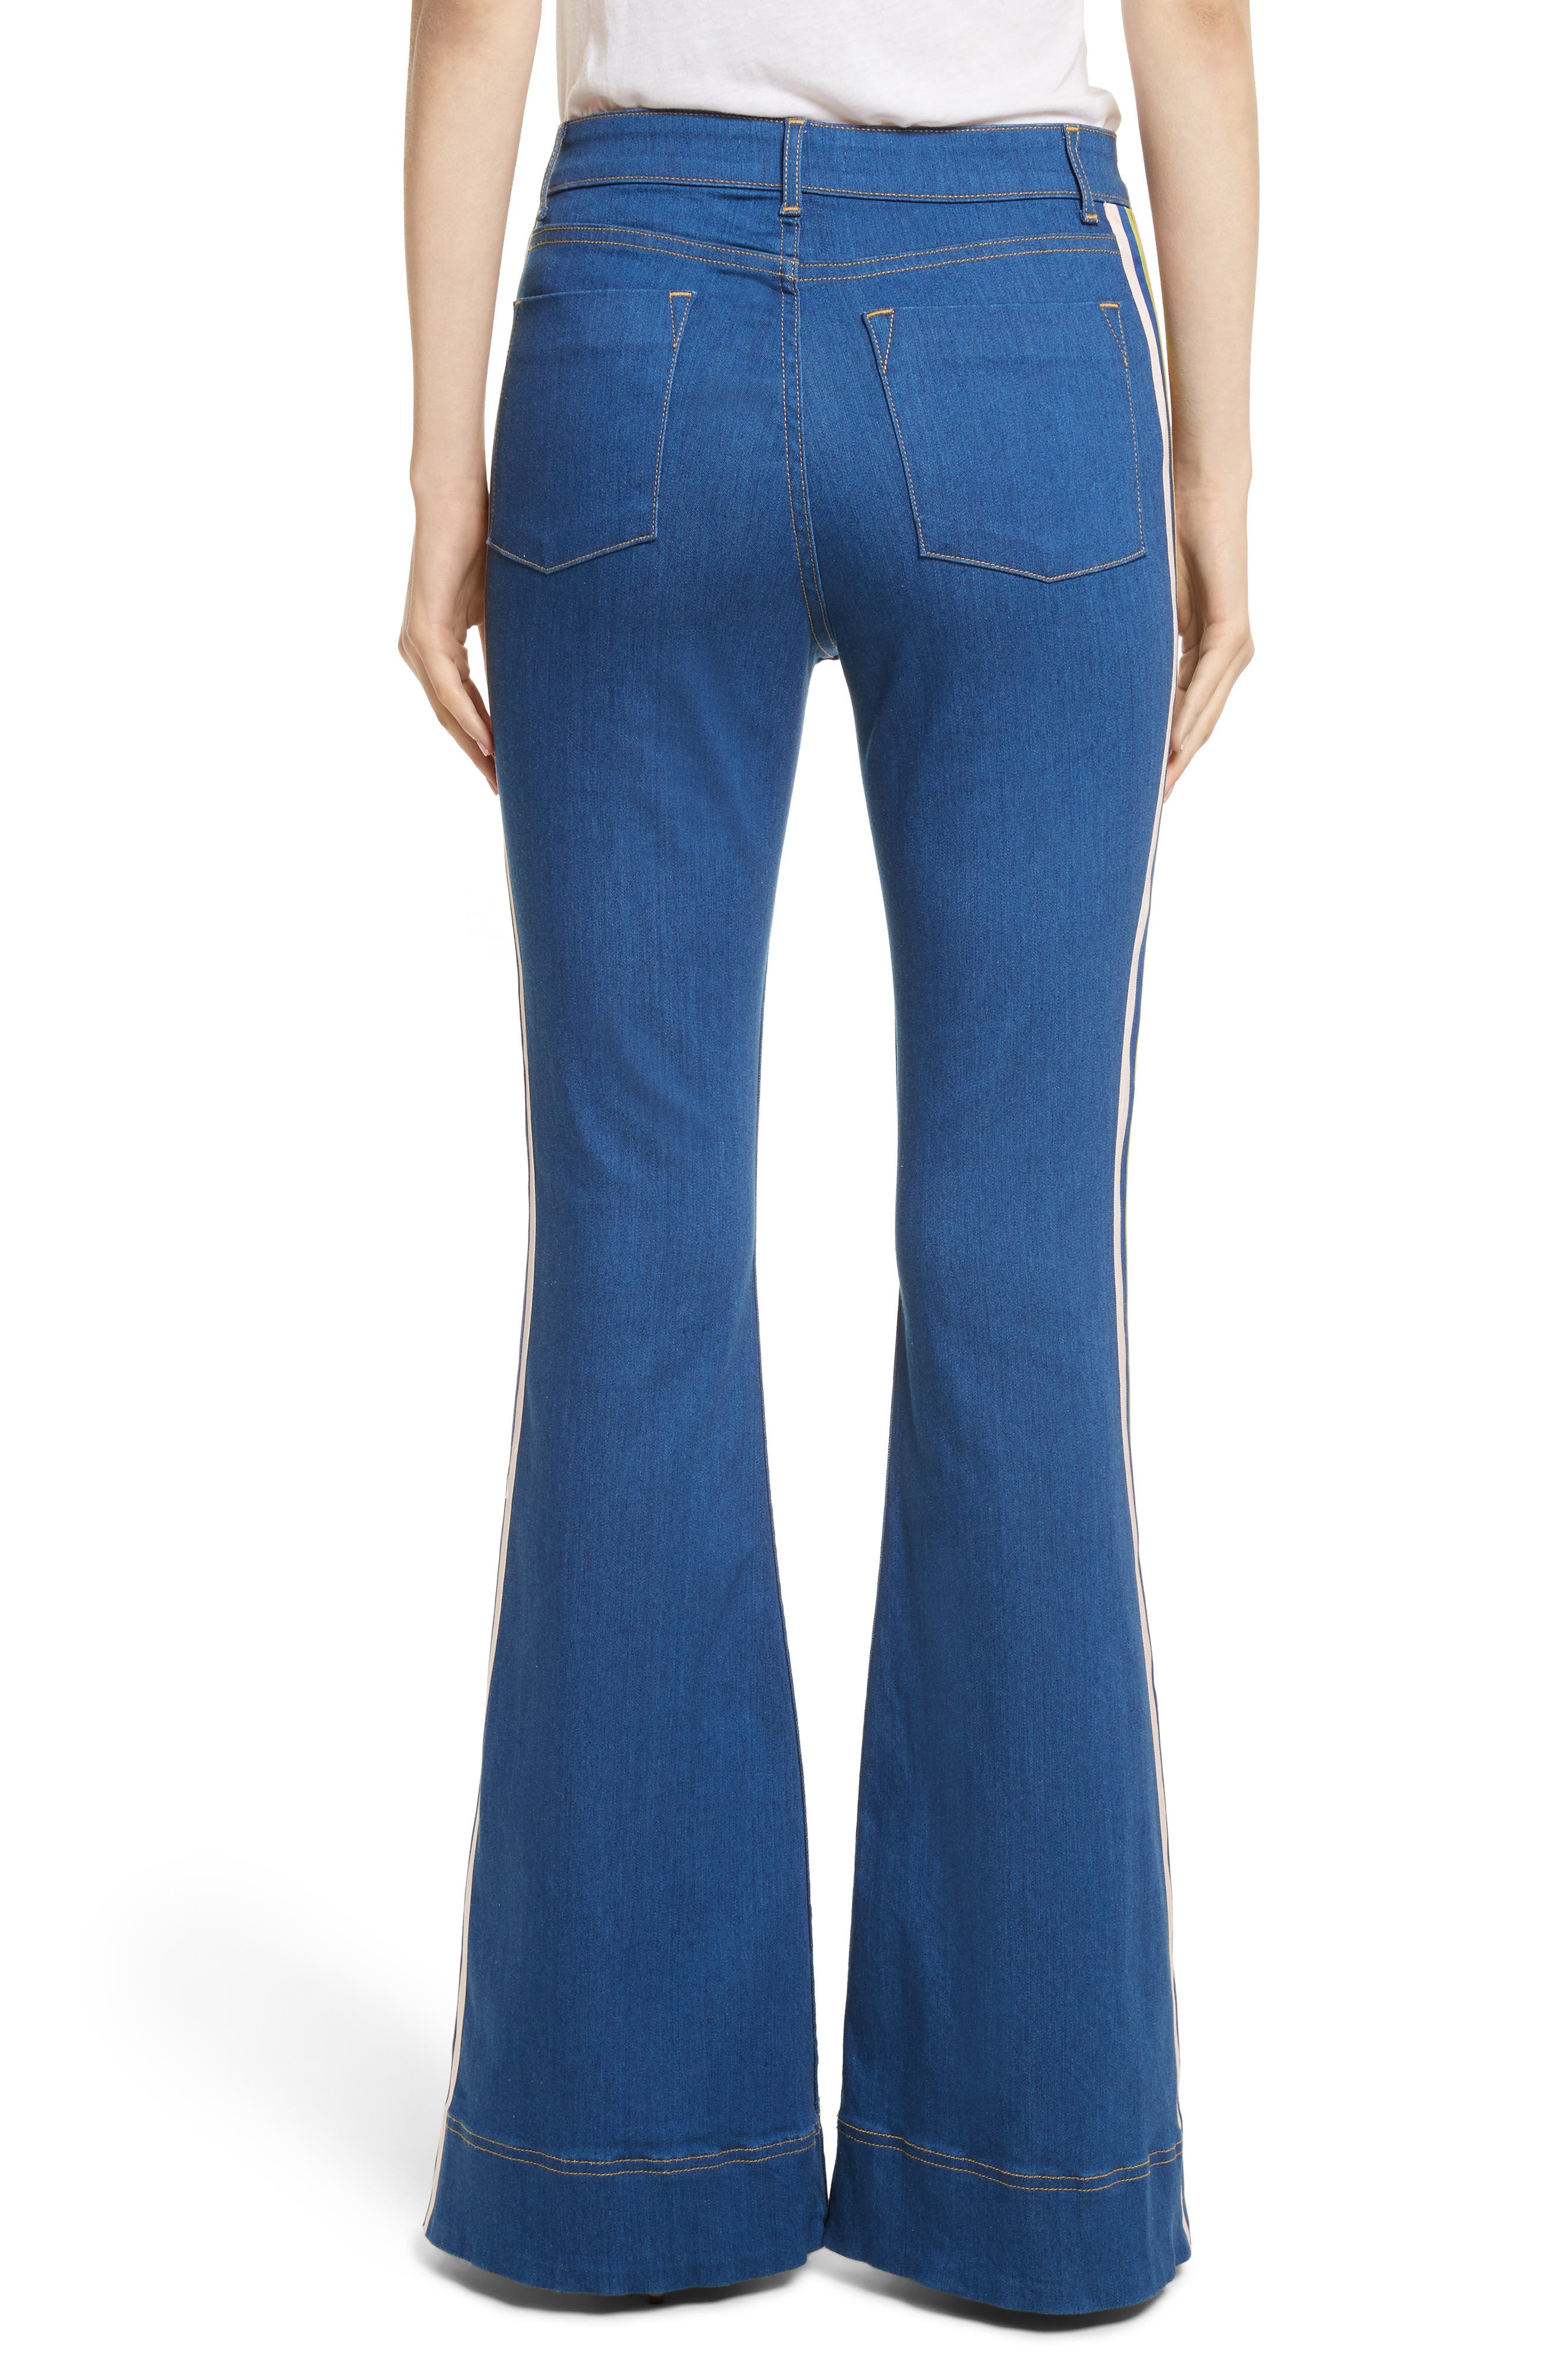 Kayleigh Bell Jeans,                             Alternate thumbnail 2, color,                             French Blue Multi